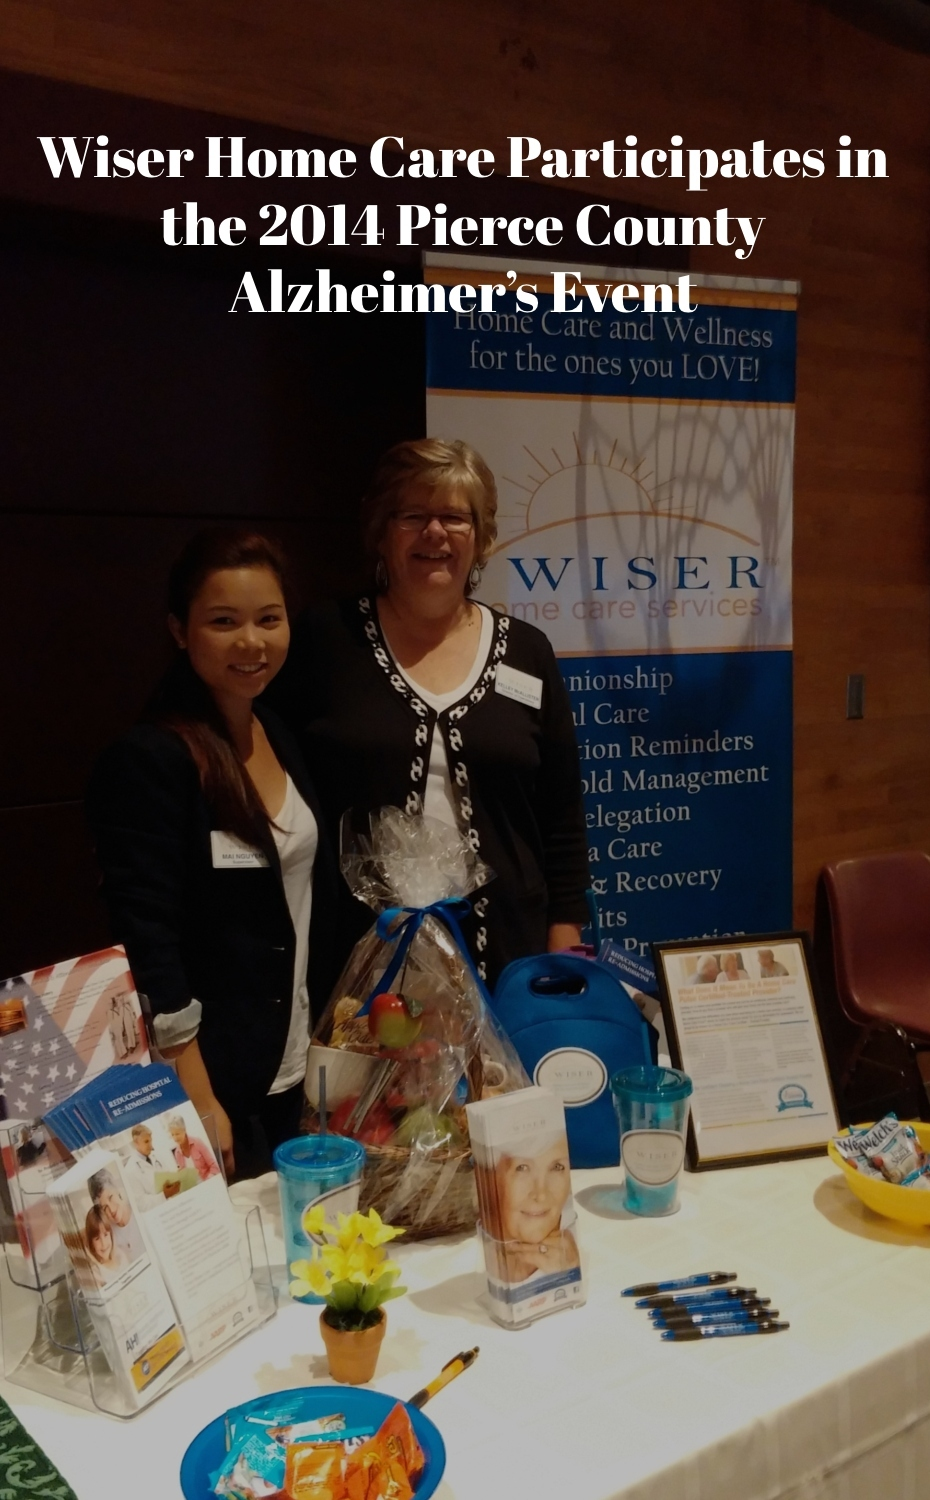 Wiser Home Care Participates in the 2014 Pierce County Alzheimer's Event